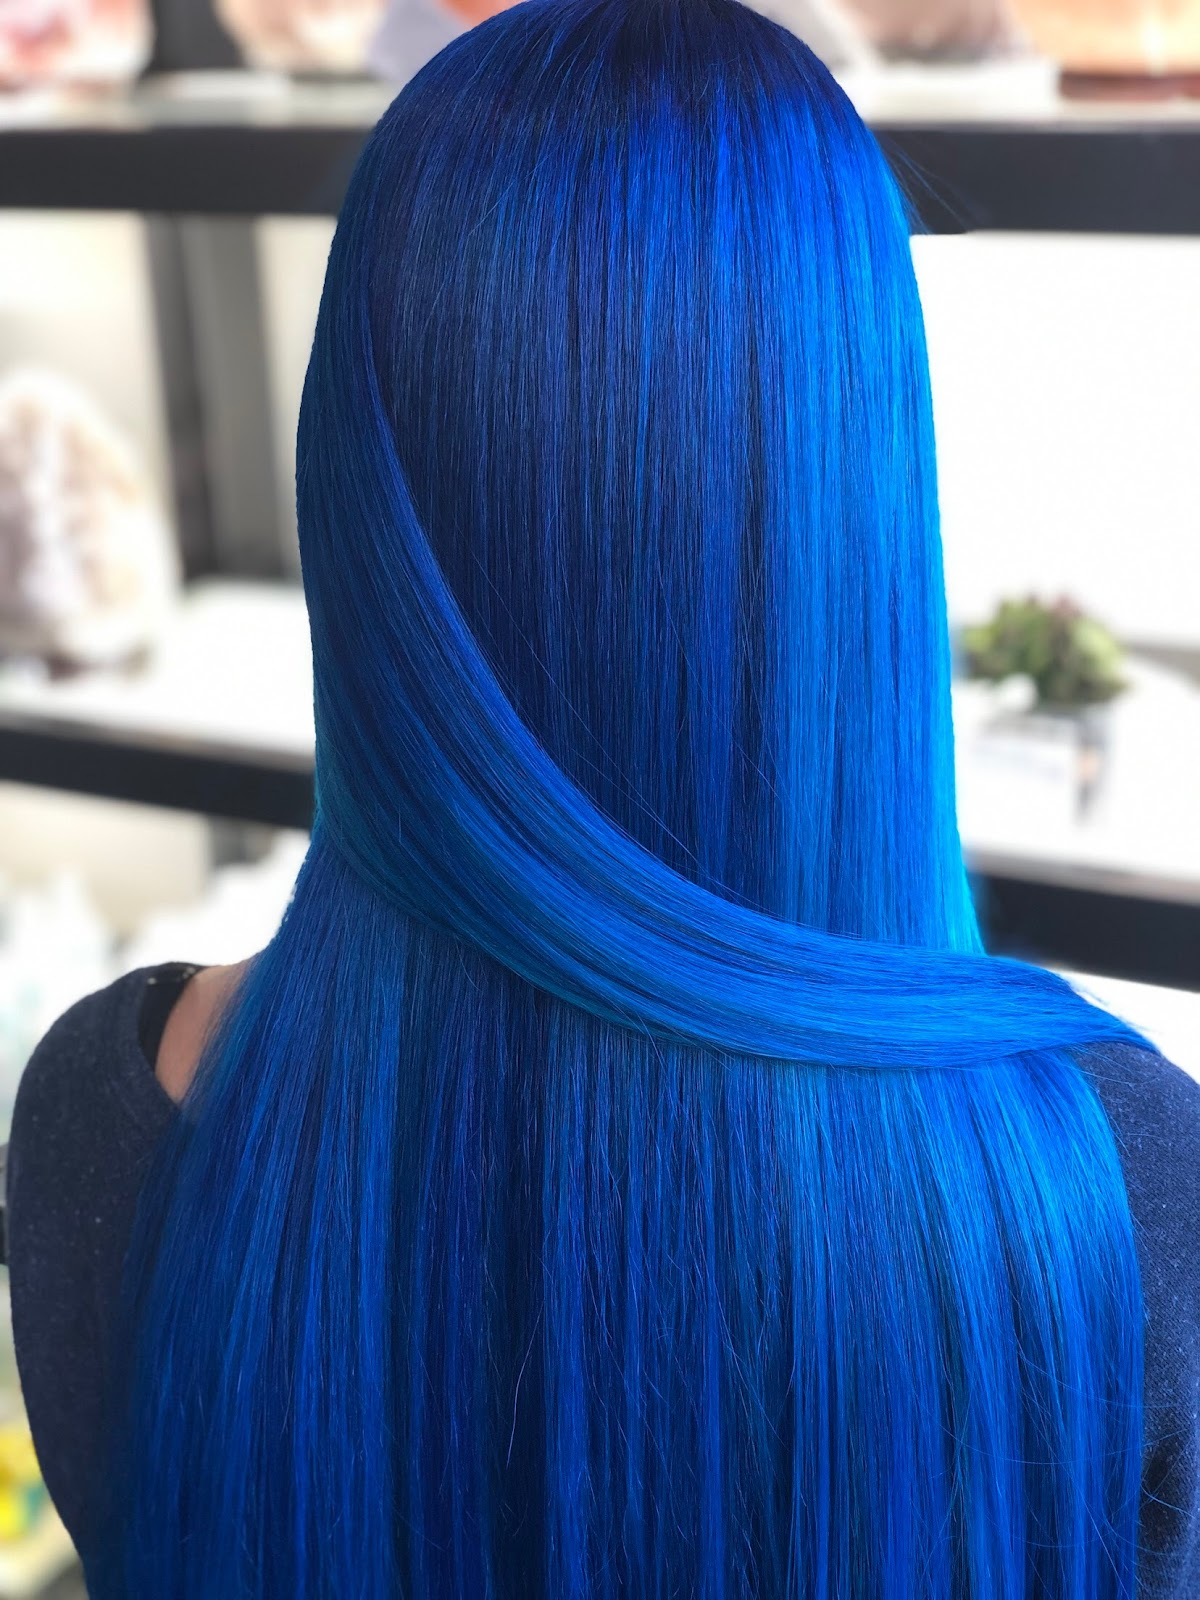 @luxlittler Cobalt blue vivid color using Pravana at Phia Salon in Columbus, Ohio